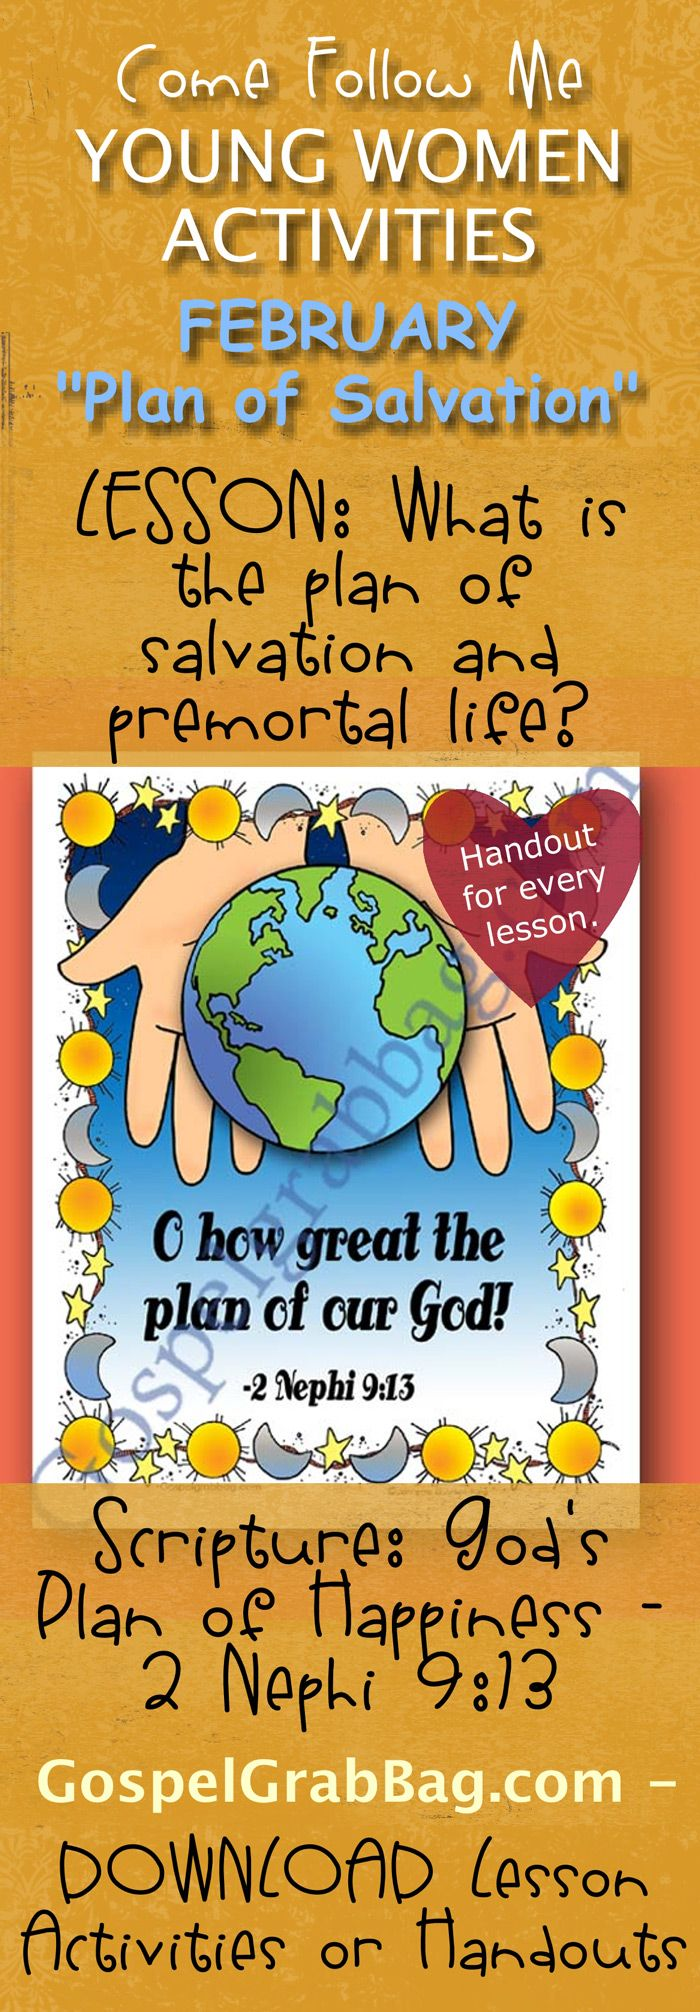 PLAN OF HAPPINESS – PLAN OF SALVATION: Come Follow Me – LDS Young Women Activities, February Theme: The Plan of Salvation, Lesson Topic #1 What is the plan of salvation? handout for every lesson, ACTIVITY: Heavenly Father's Plan of Happiness – 2 Nephi 9:13 Scripture Poster, Gospel grab bag – handouts to download from gospelgrabbag.com